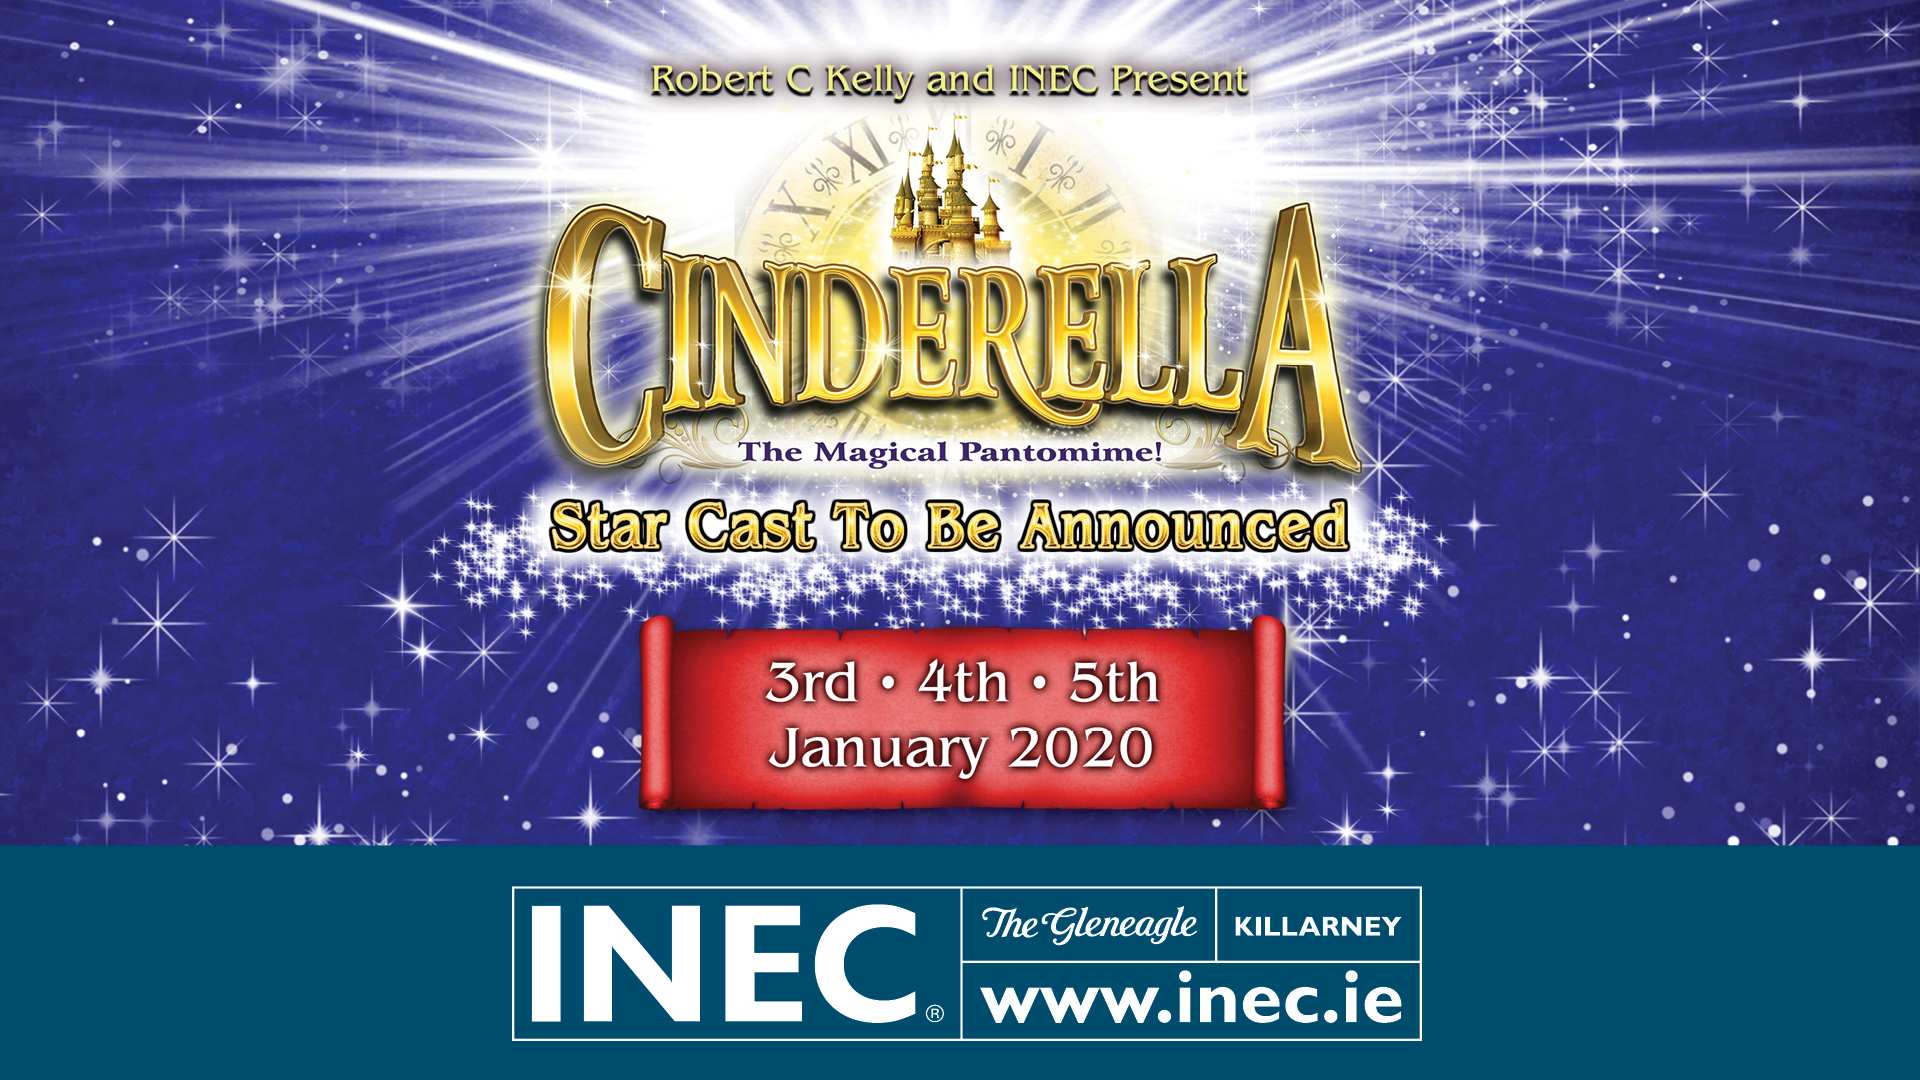 Cinderella comes to the INEC Killarney Jan 3 -5 2020